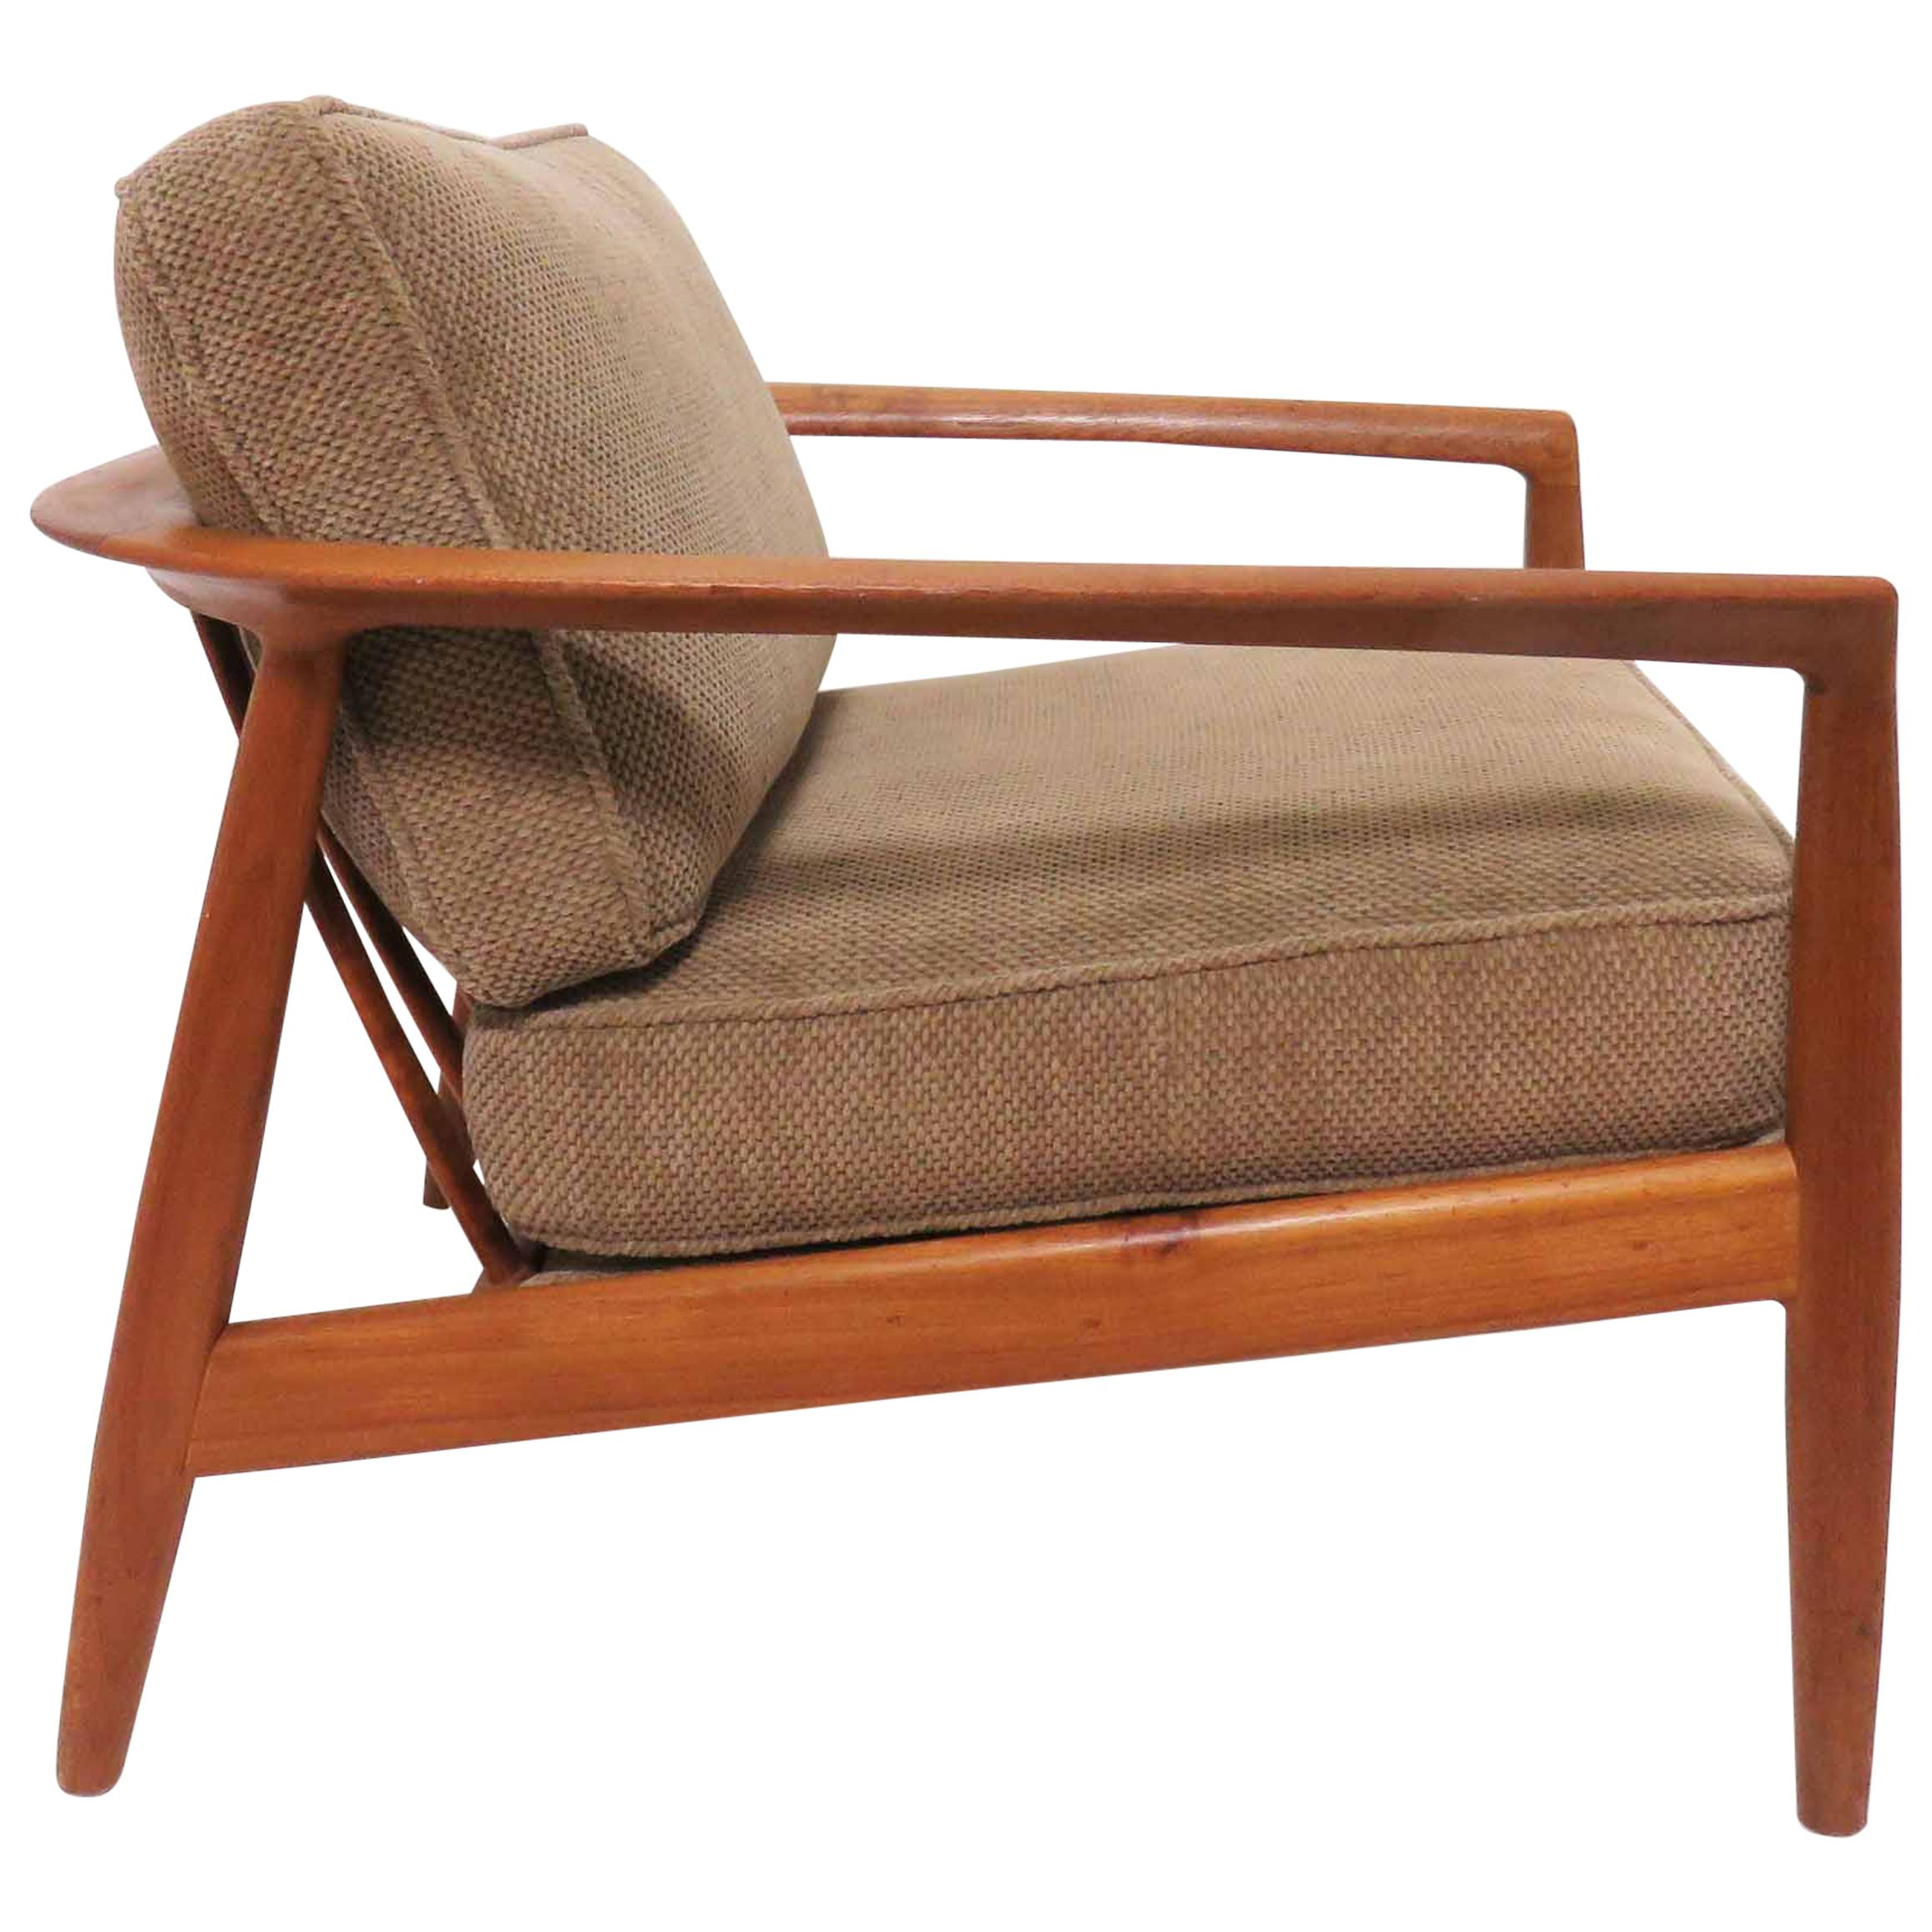 Danish Modern Lounge Chair Folke Ohlsson For Dux Danish Modern Teak Lounge Chair Circa 1960s